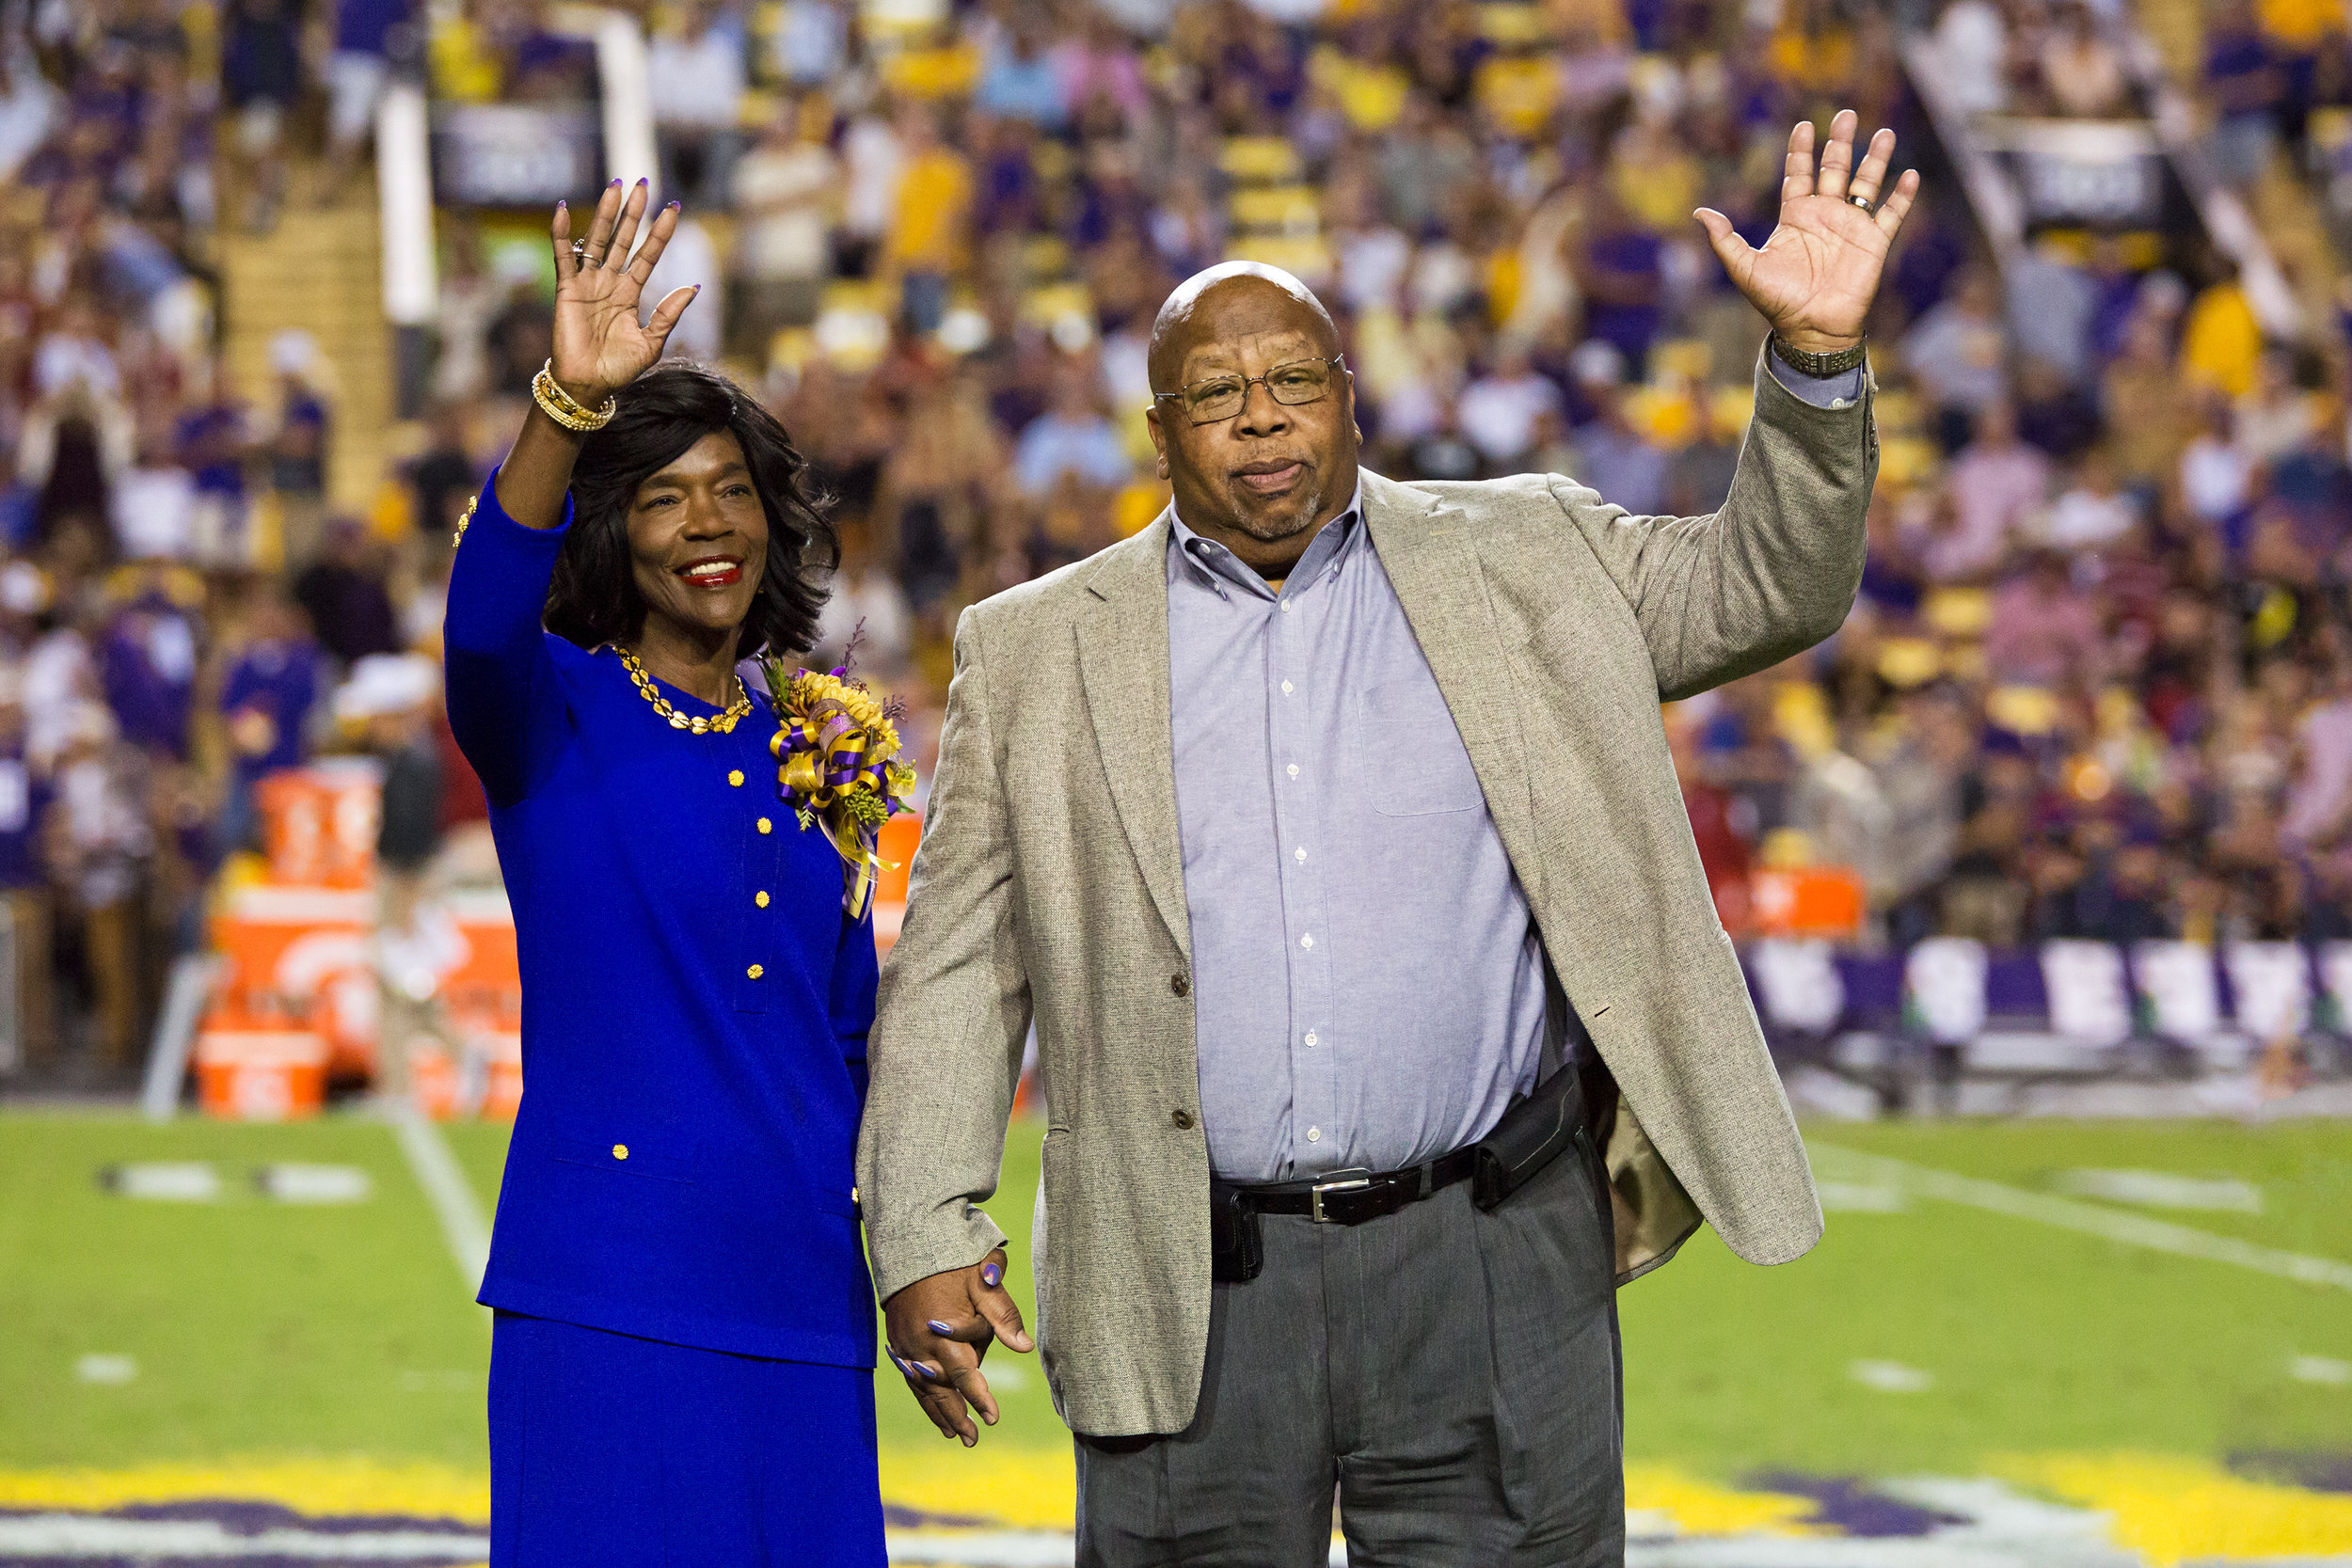 Dr. and Mrs. Warner on the field during halftime of an LSU football game when he was being recognized for his 2016 SEC Professor of the Year award. Credit: LSU